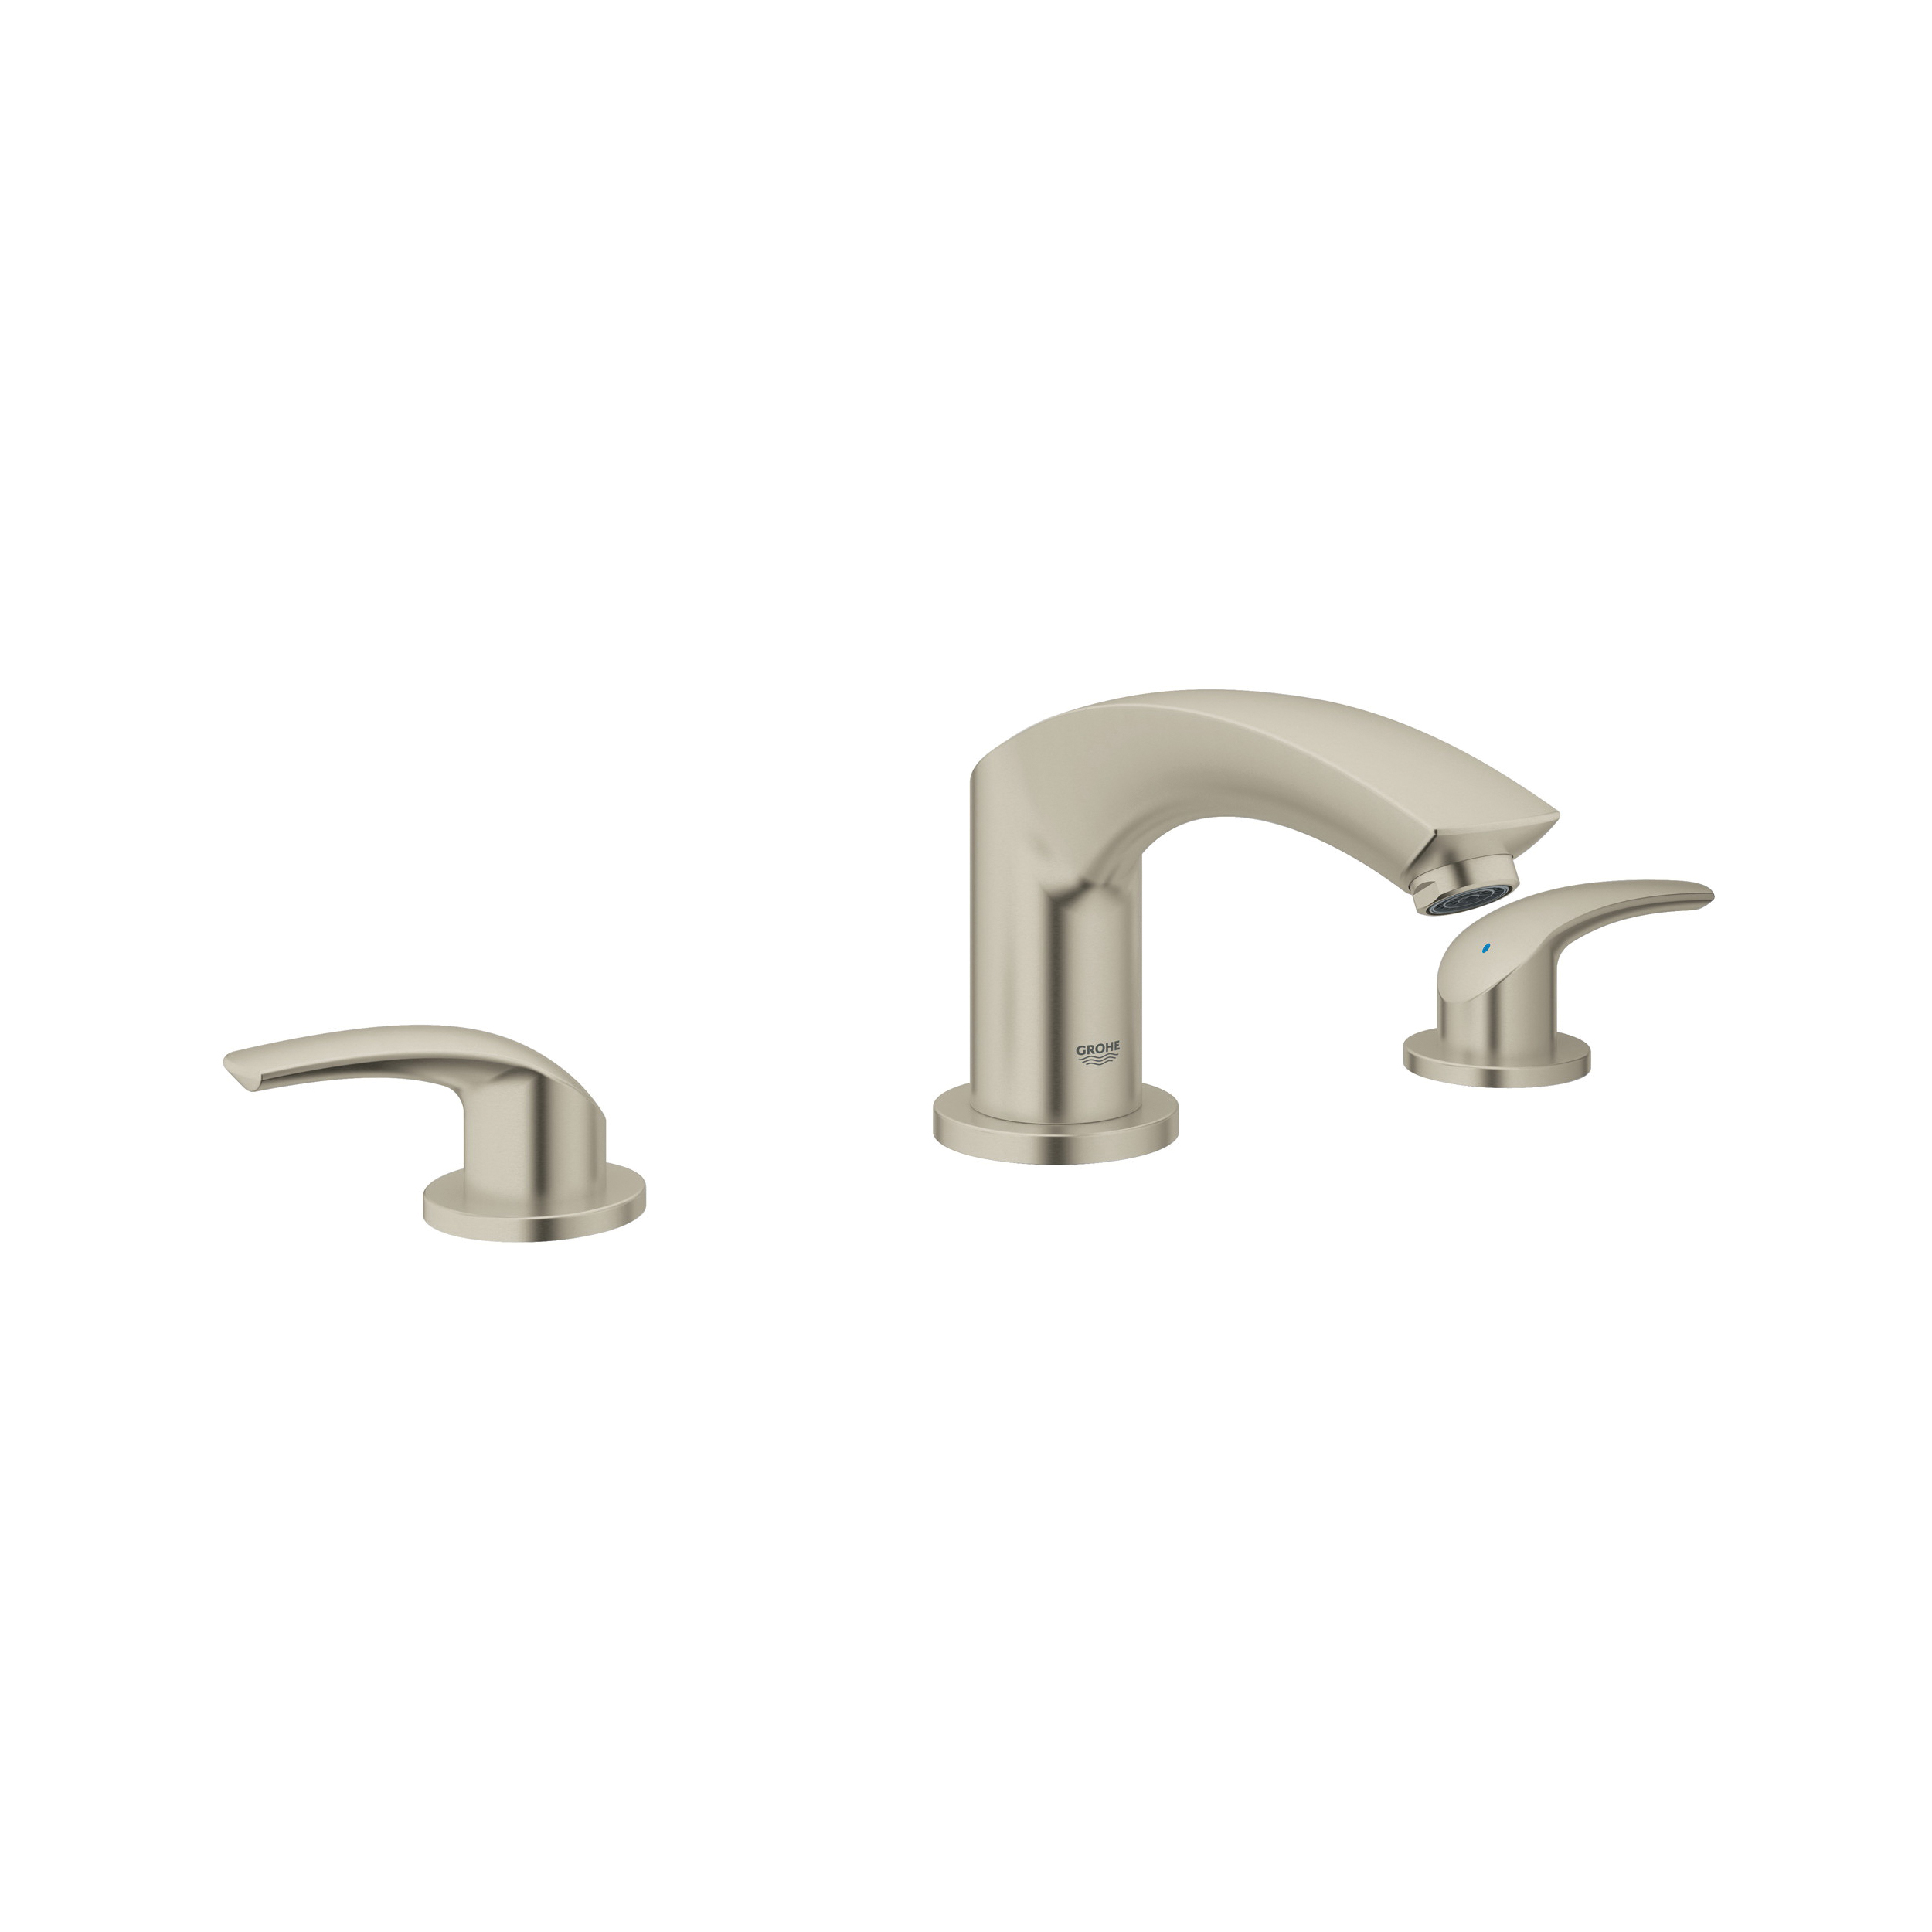 Consolidated Supply Co Grohe 25168en2 Eurosmart Roman